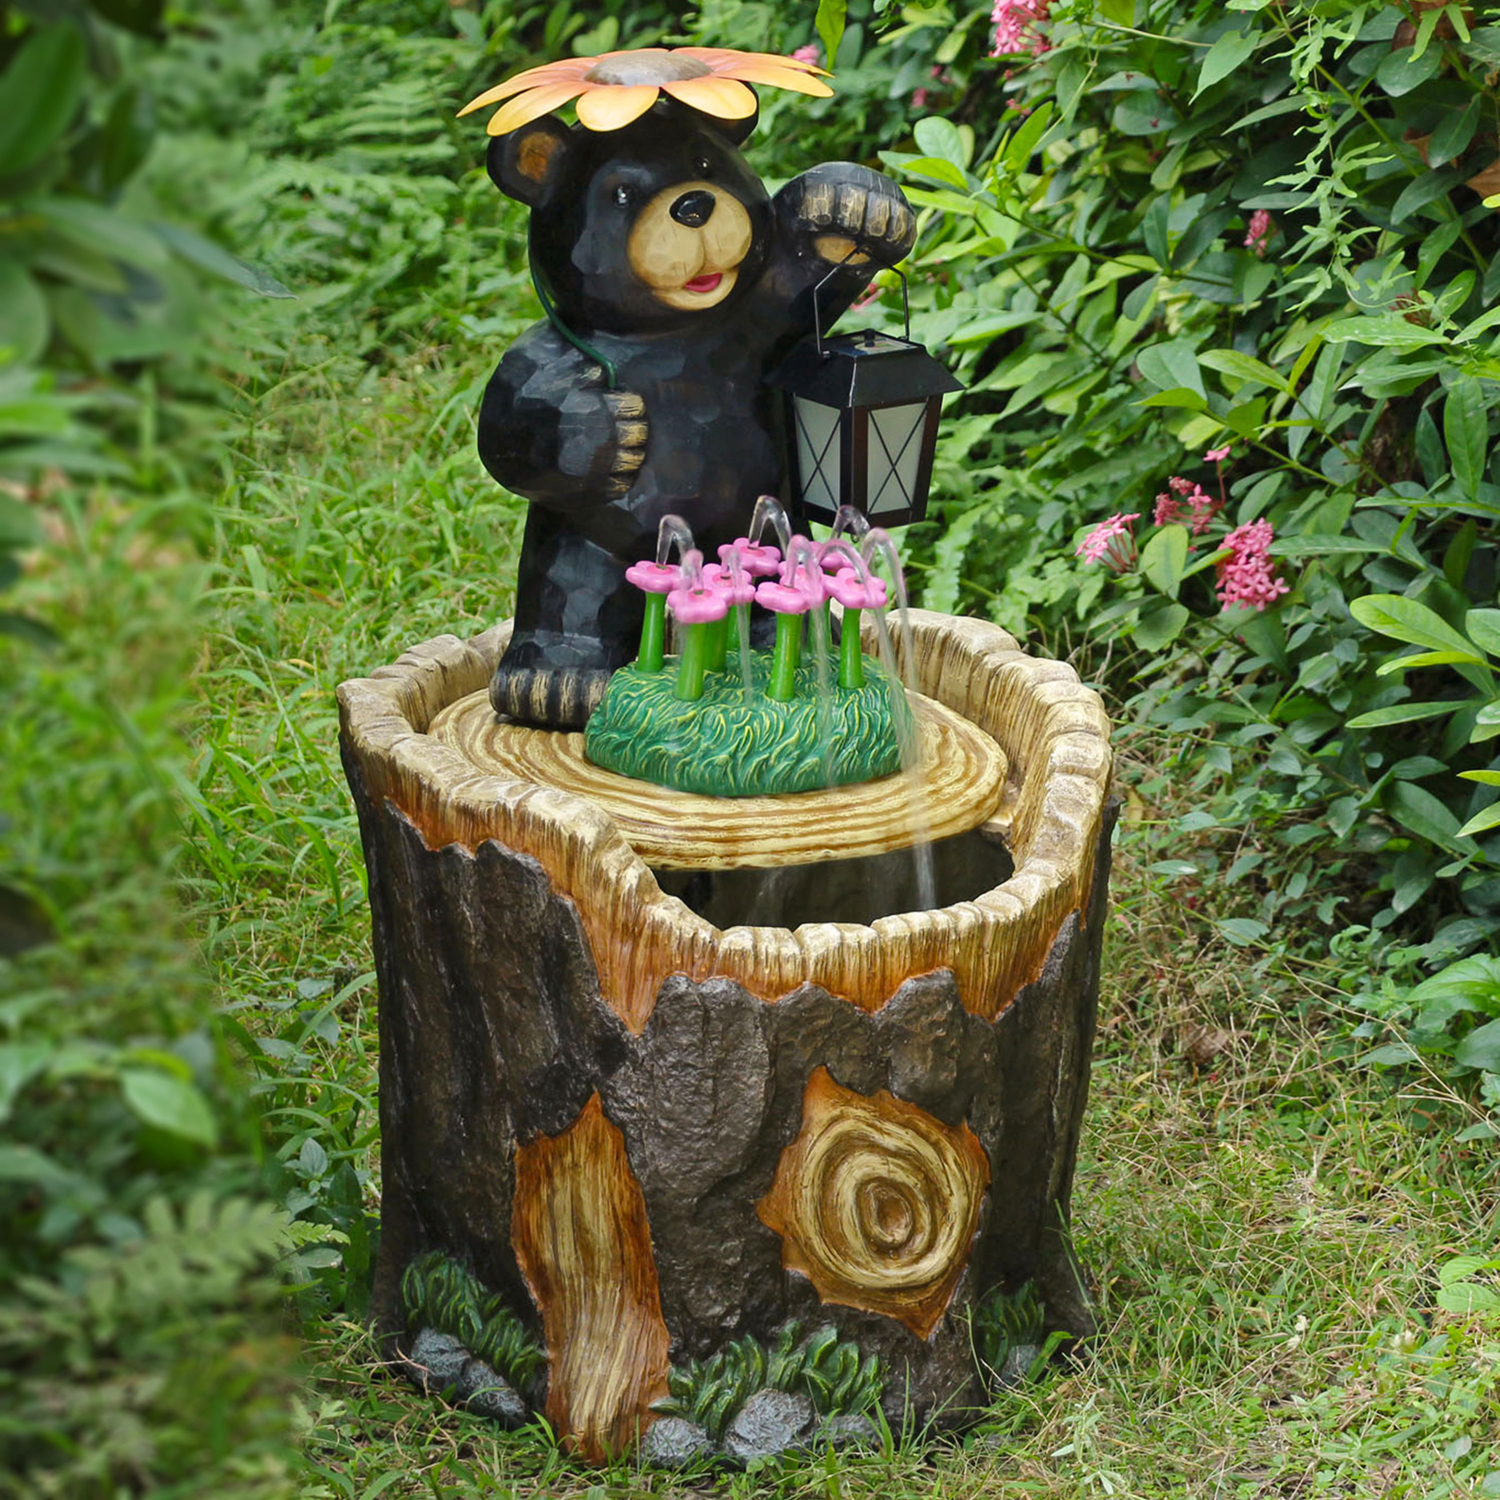 Mainstays Outdoor Bear Fountain by LEPOWER INTERNATIONAL CO LTD